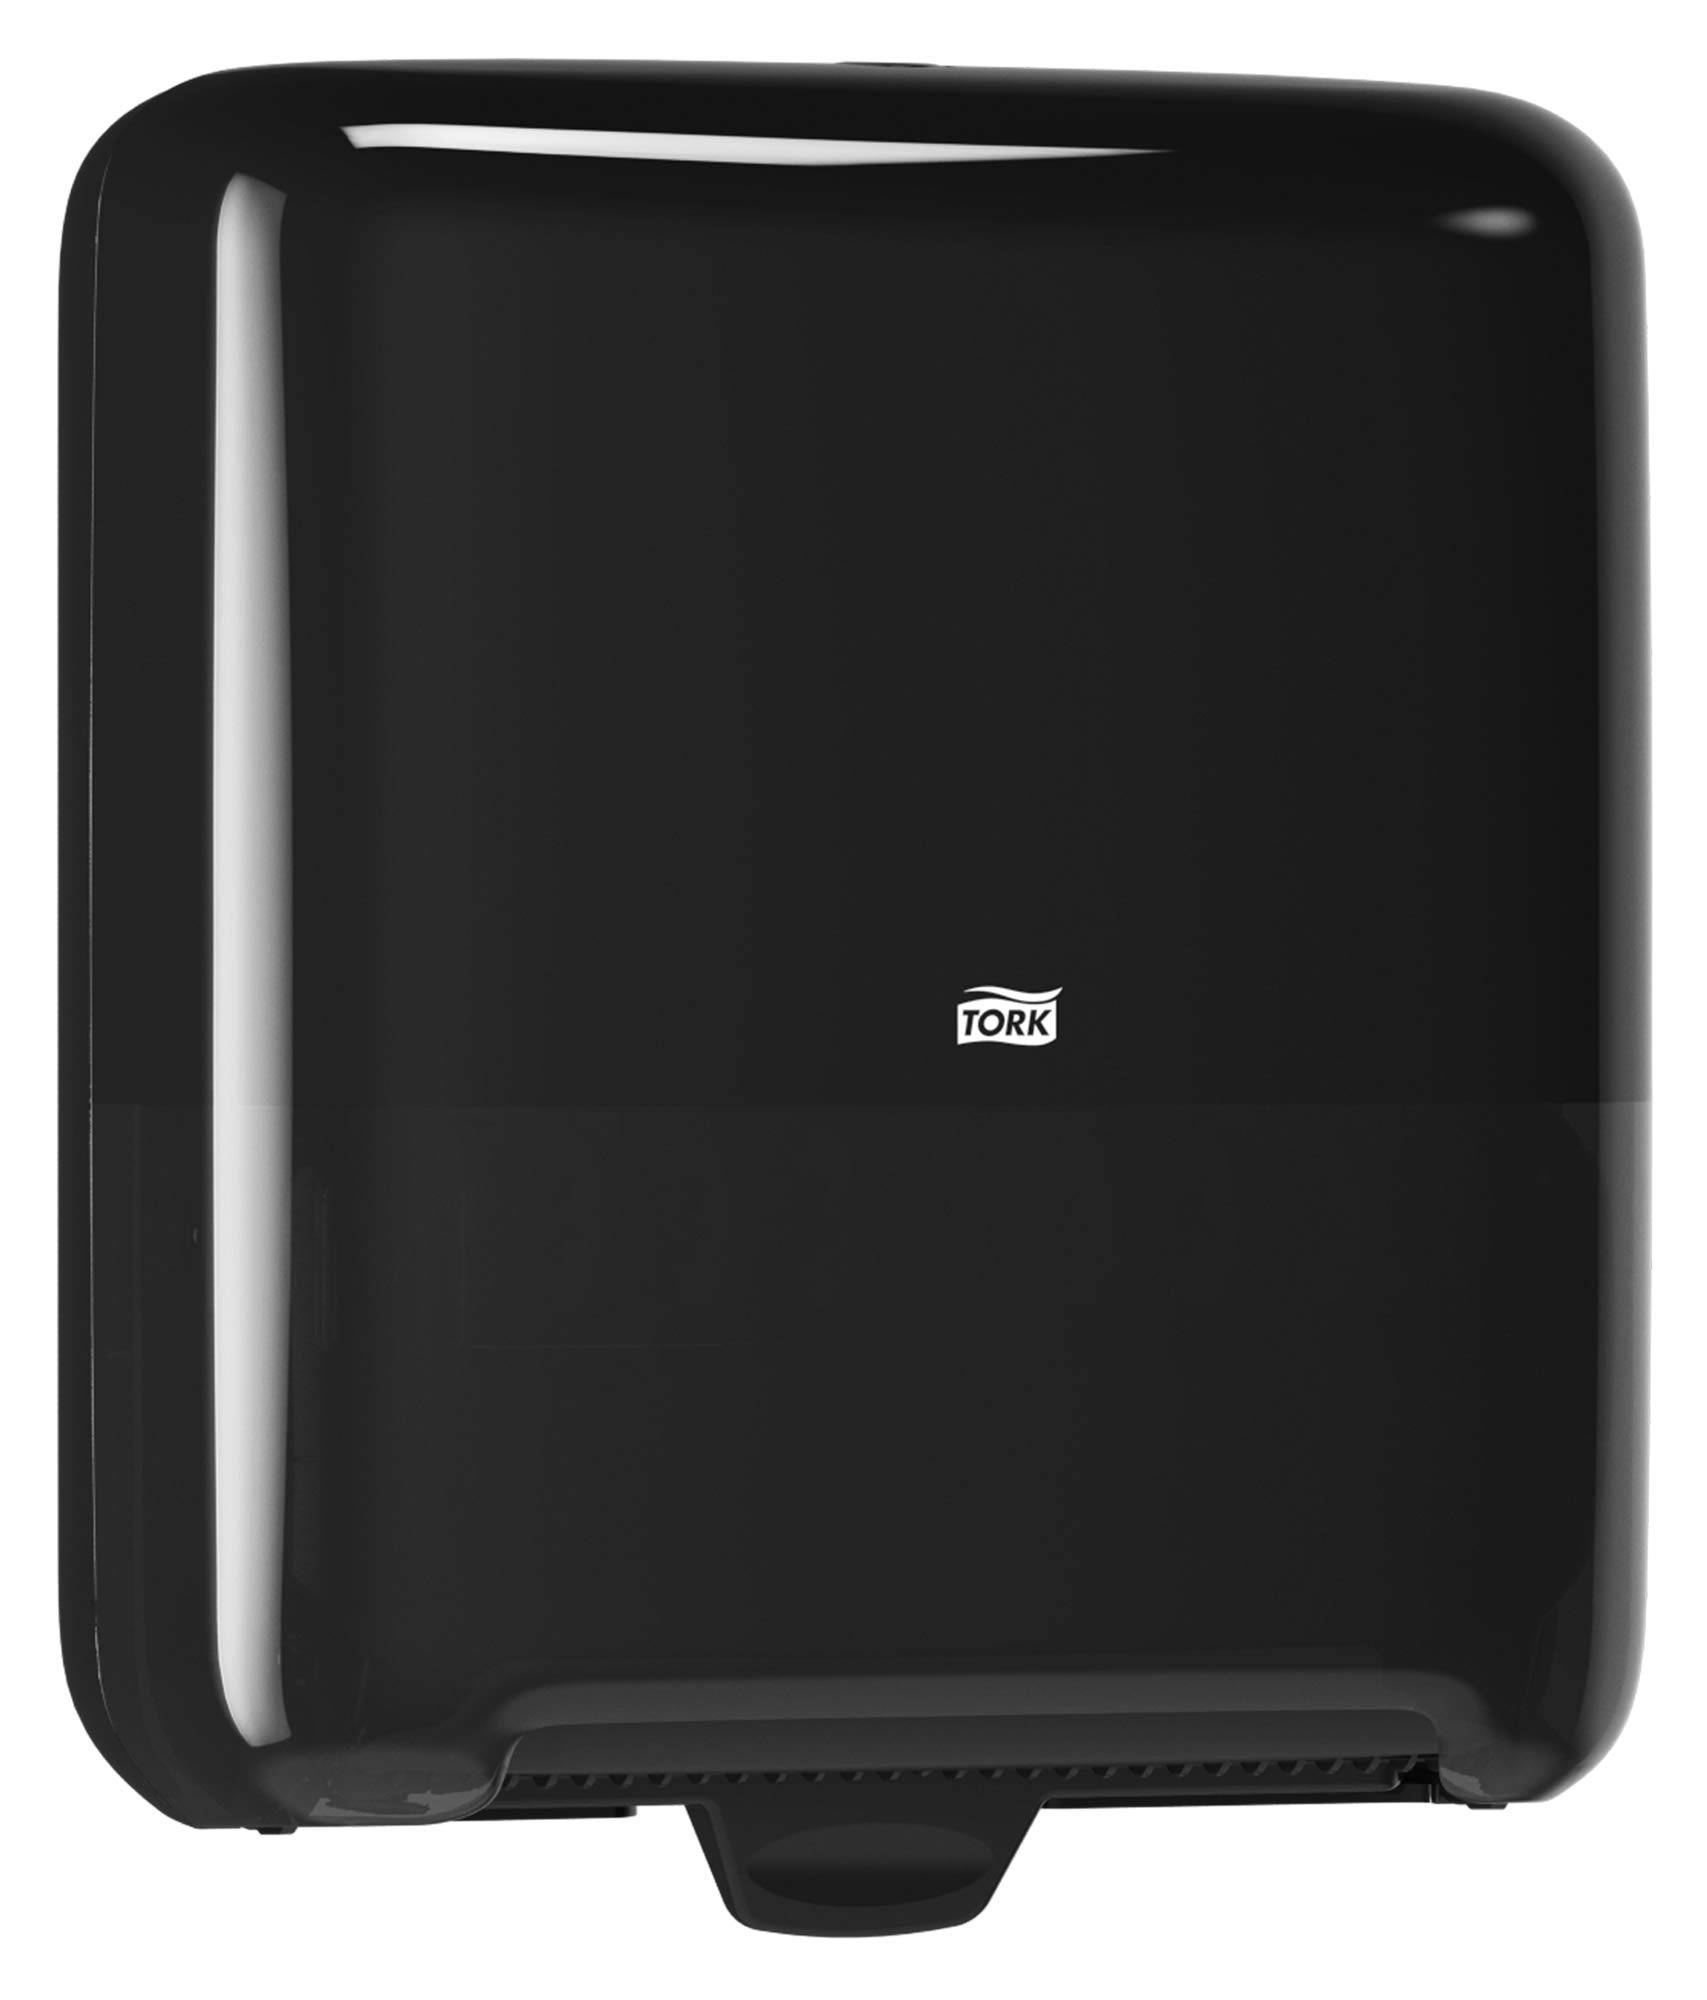 Tork 5510282 Elevation Matic Paper Hand Towel Roll Dispenser, 14.65'' Height x 13.2'' Width x 8.1'' Depth, Black (Case of 1 Dispenser) by Tork (Image #9)